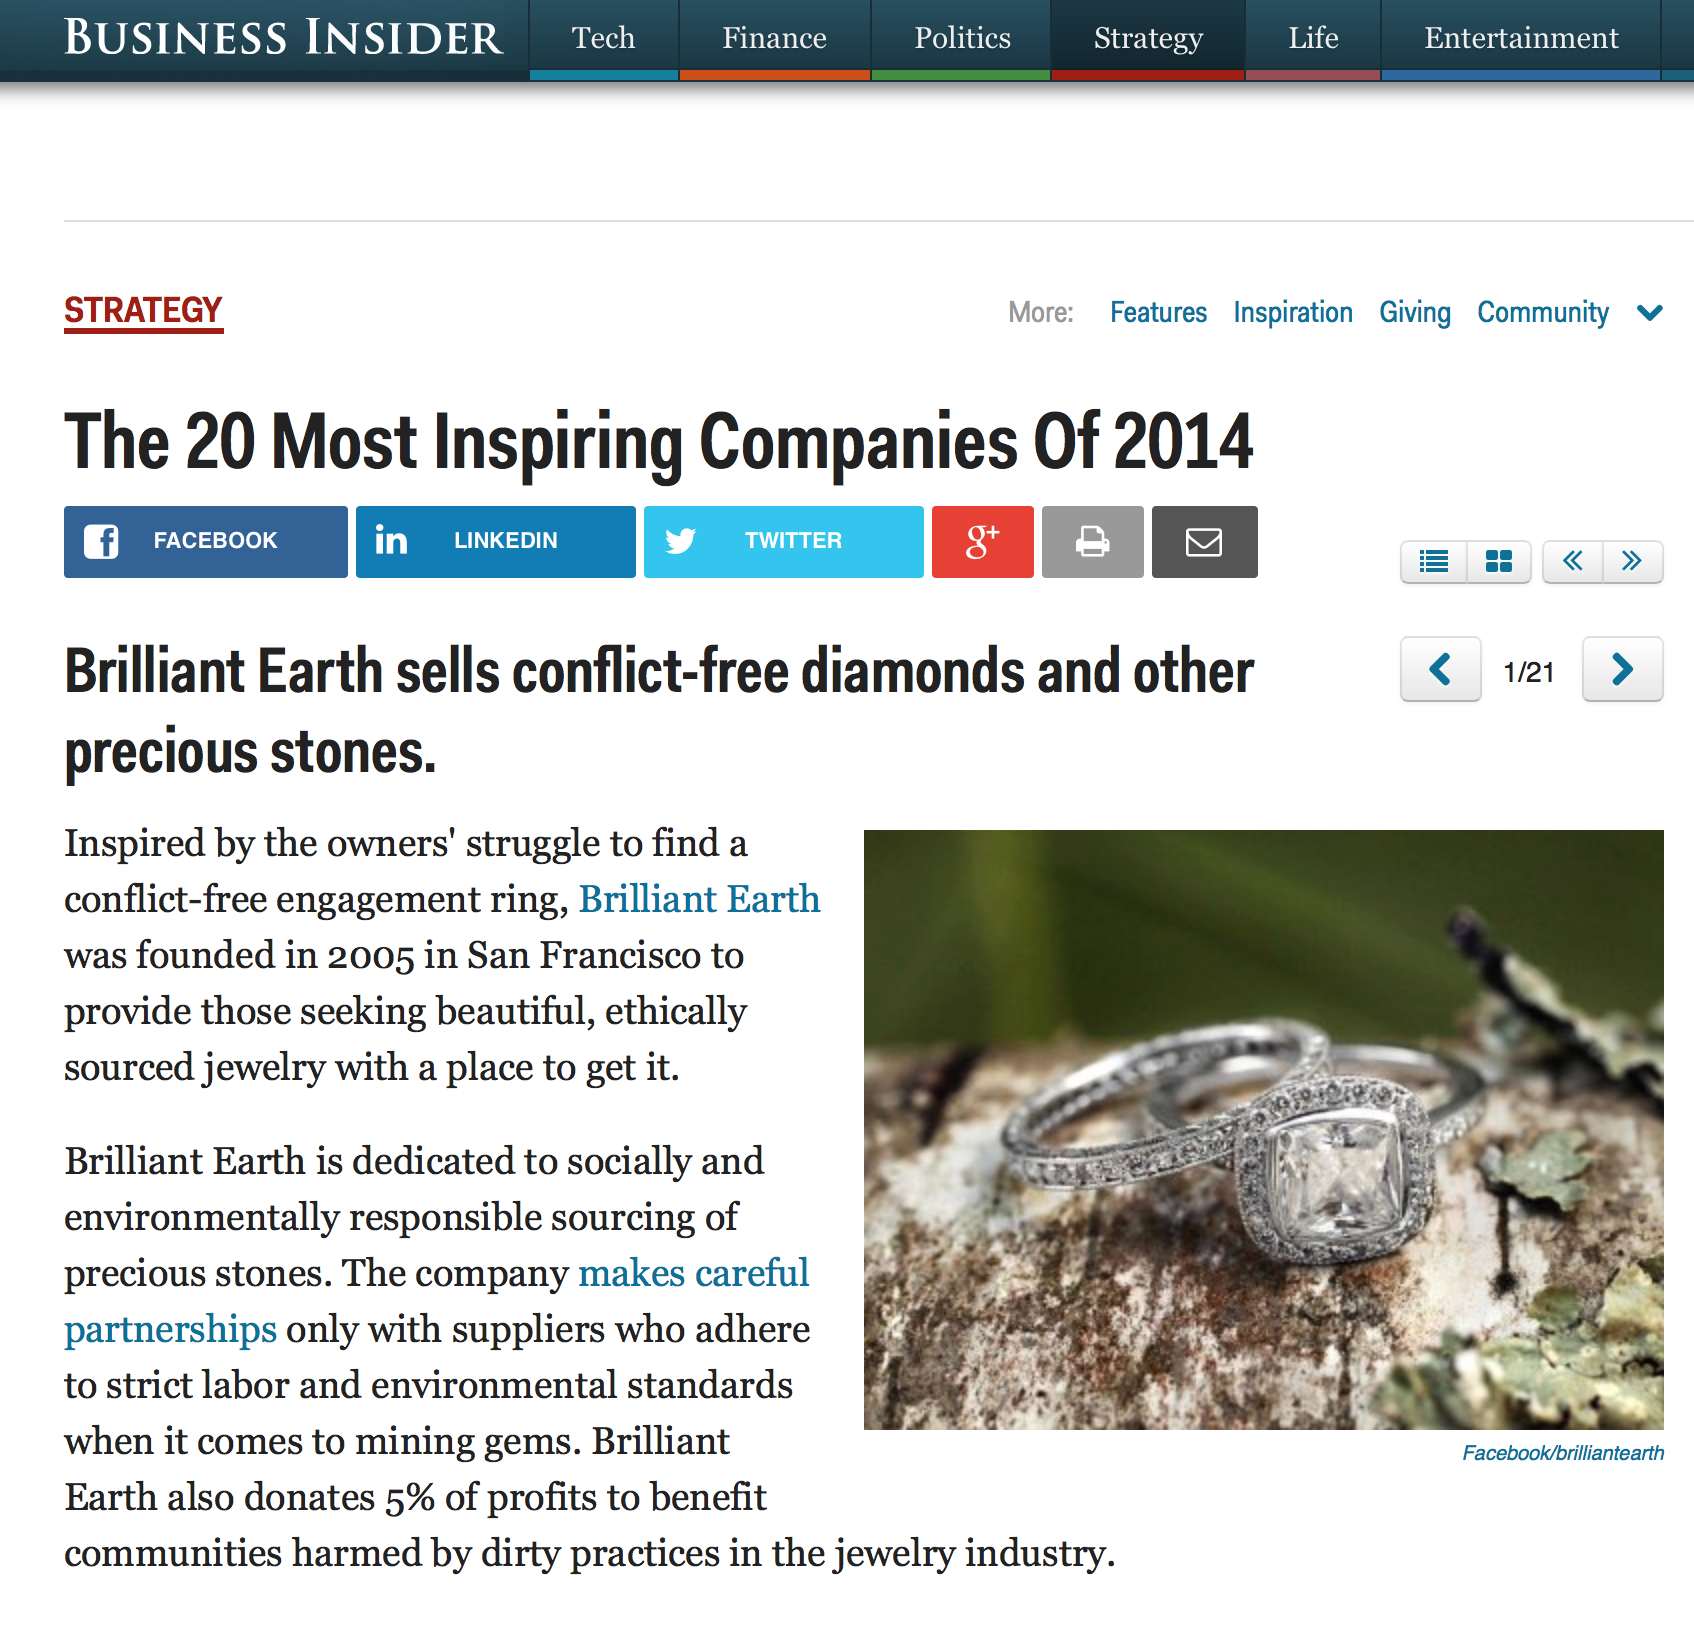 Business Insider's 20 Most Inspiring Companies of 2014